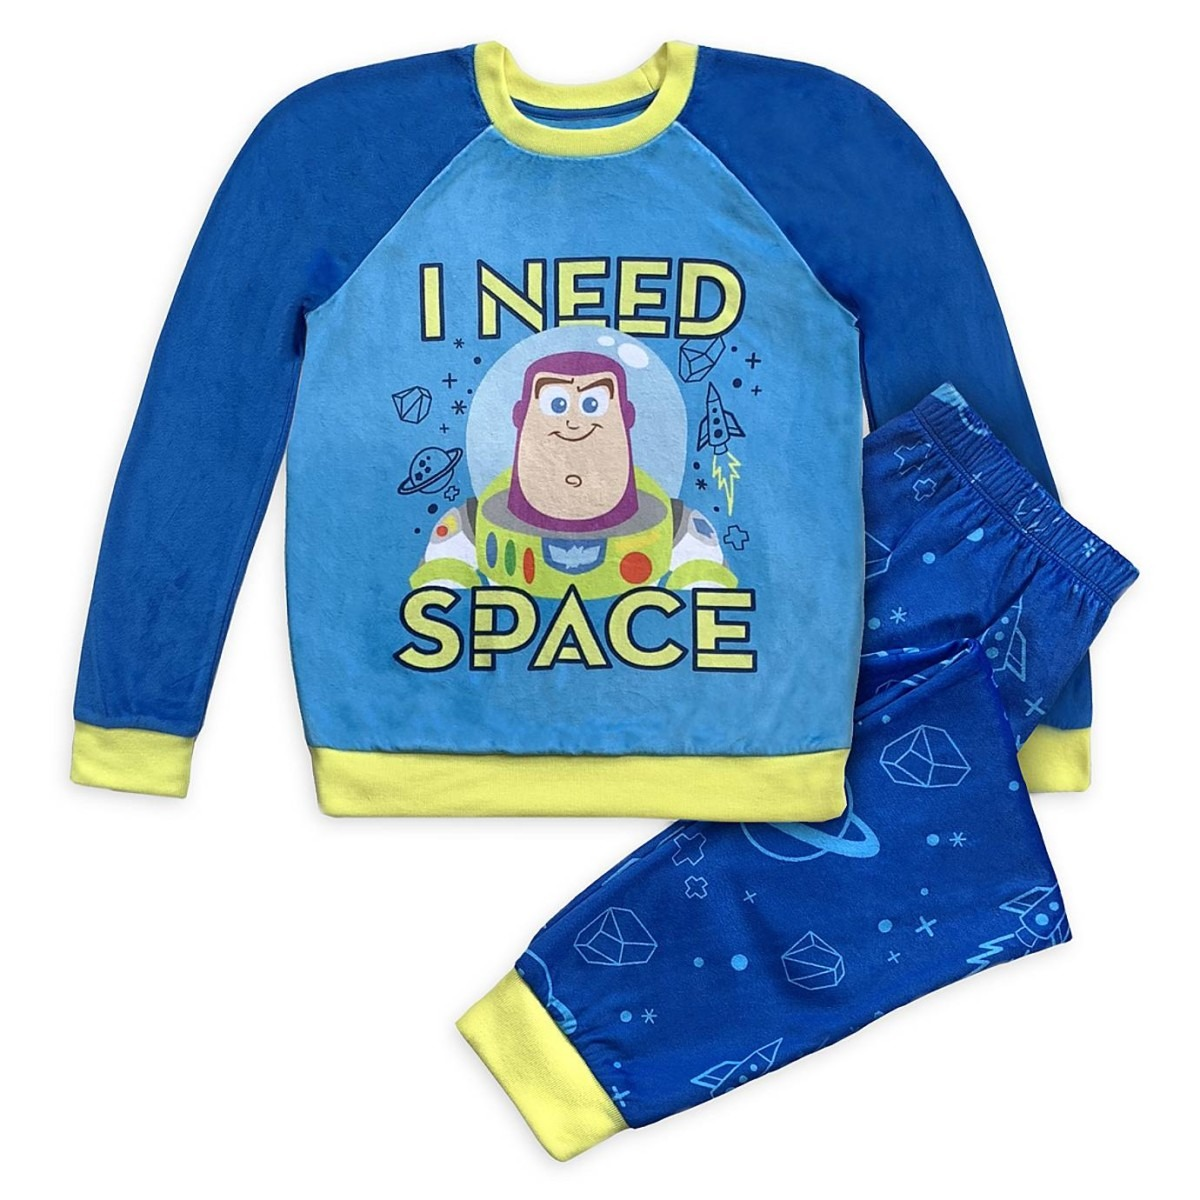 Let Your Kids Sleep in Disney Style With This New Magical Sleepwear 5